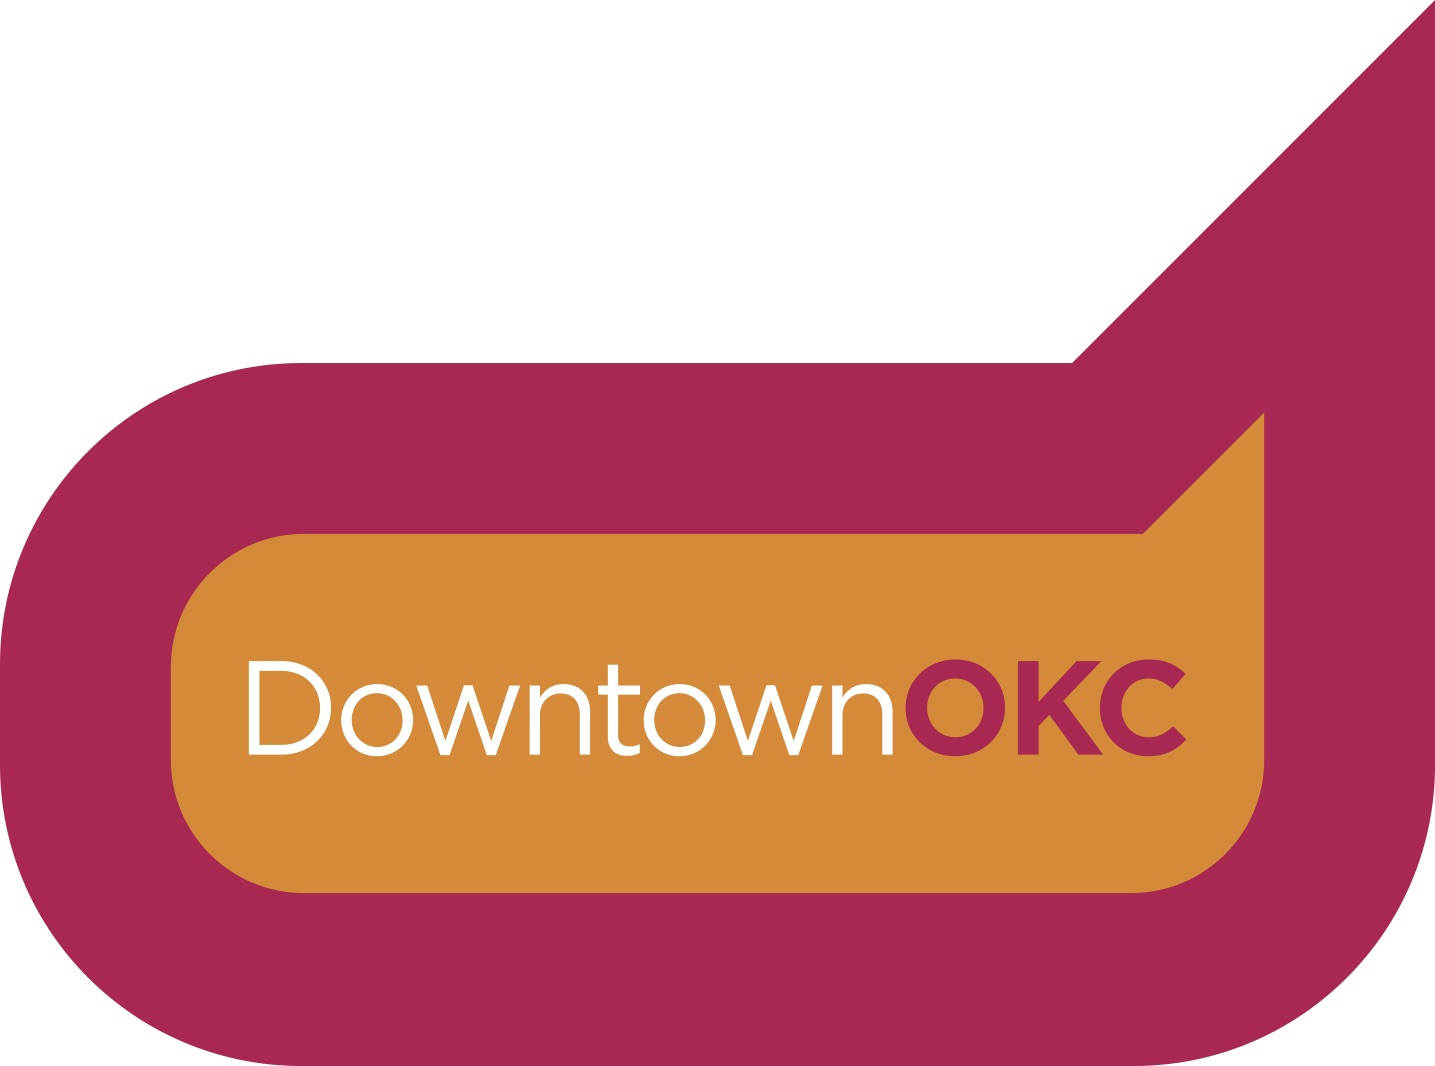 DT_BUBBLE_logo_downtownokc.jpg